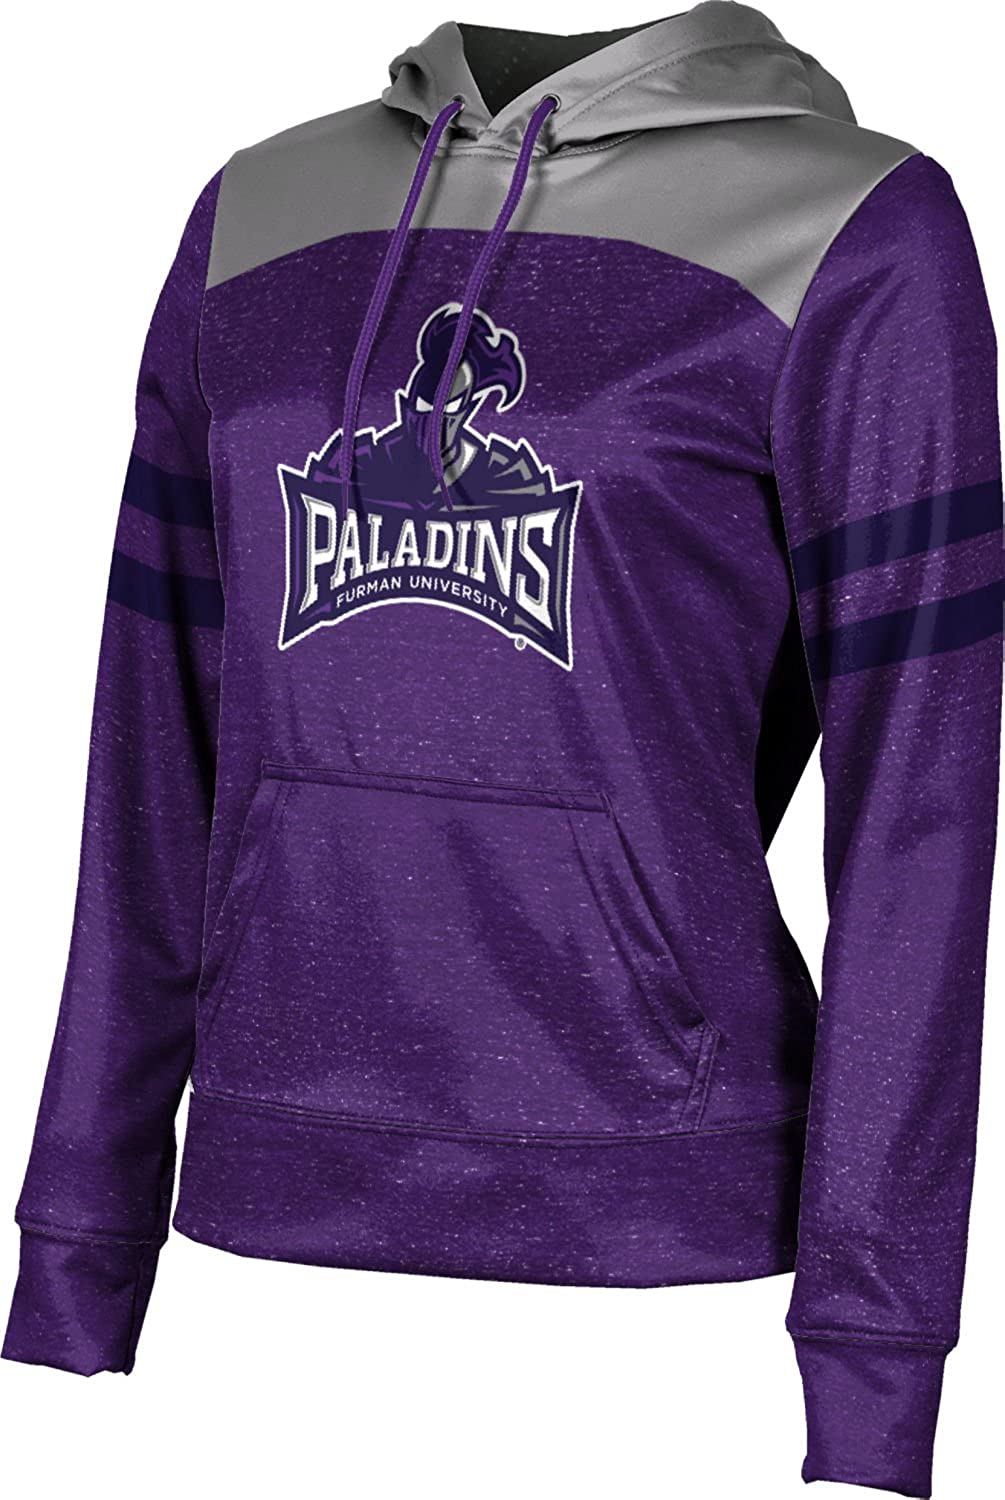 ProSphere Furman University Girls' Hoodie Sweatshirt - Gameday